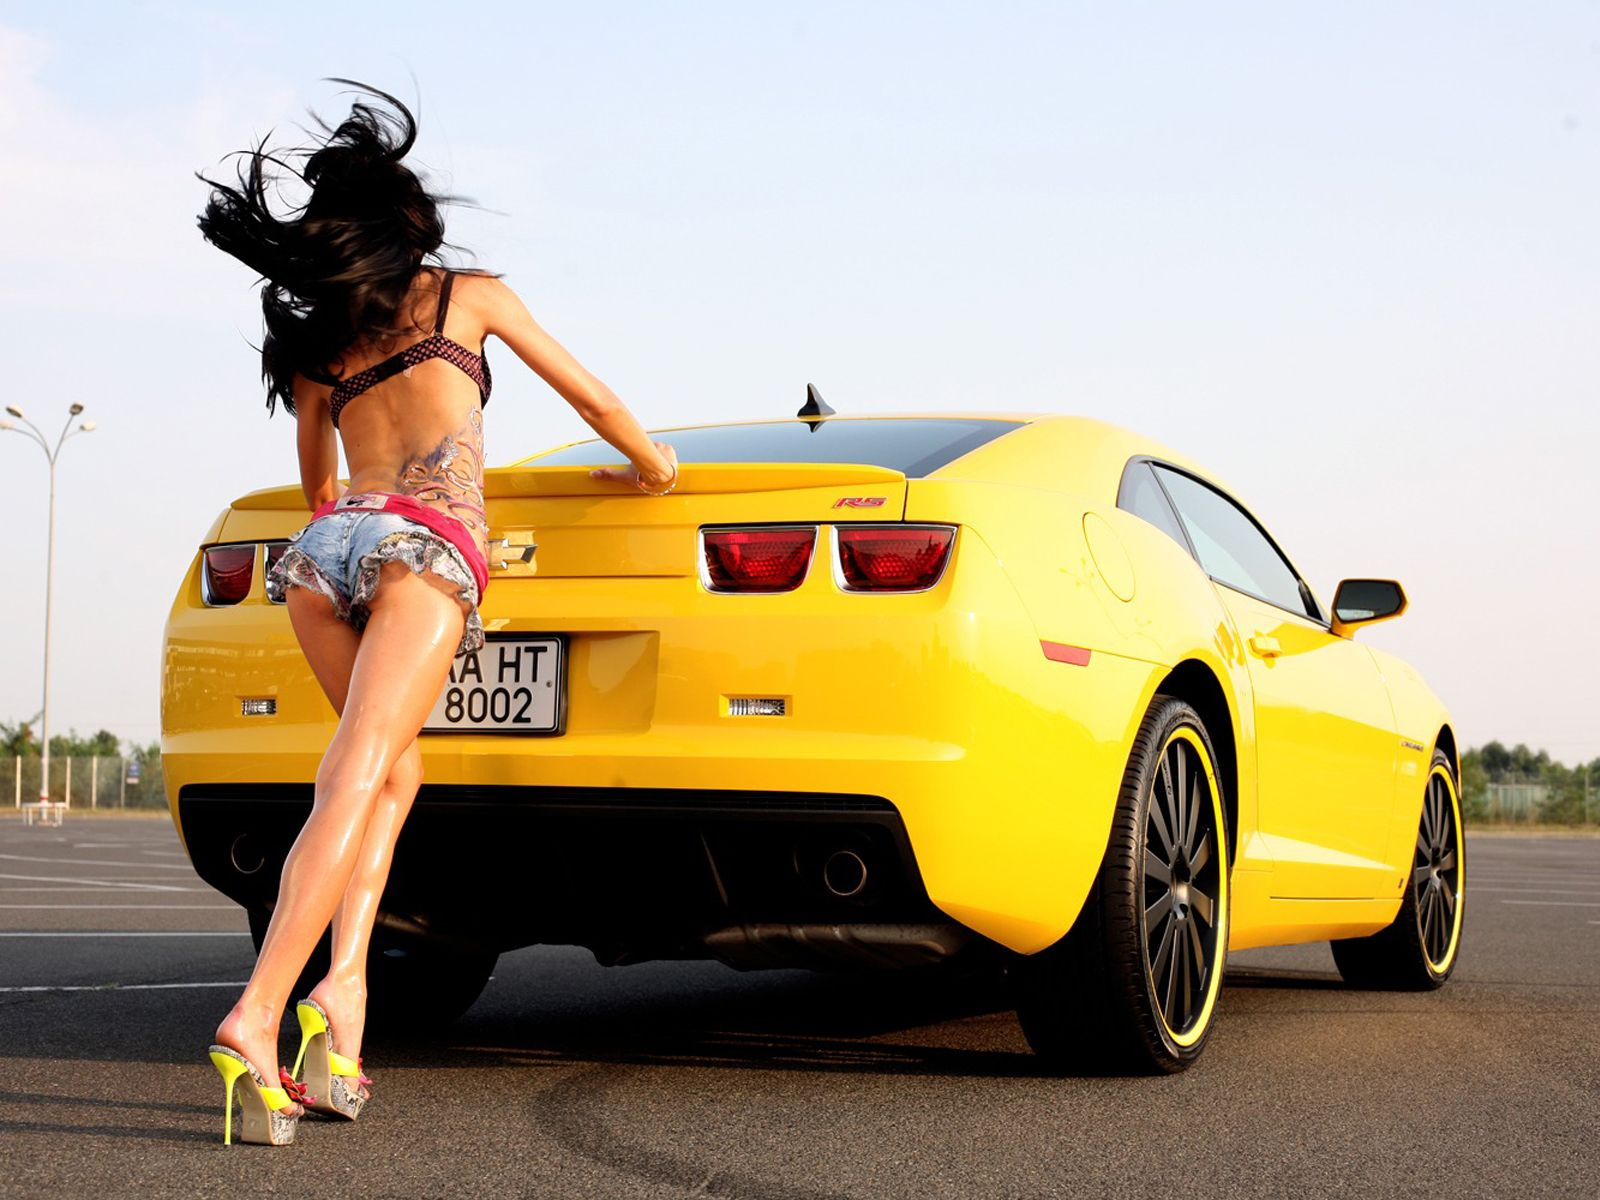 download free car wallpapers pictures and desktop backgrounds amazing collection of widescreen